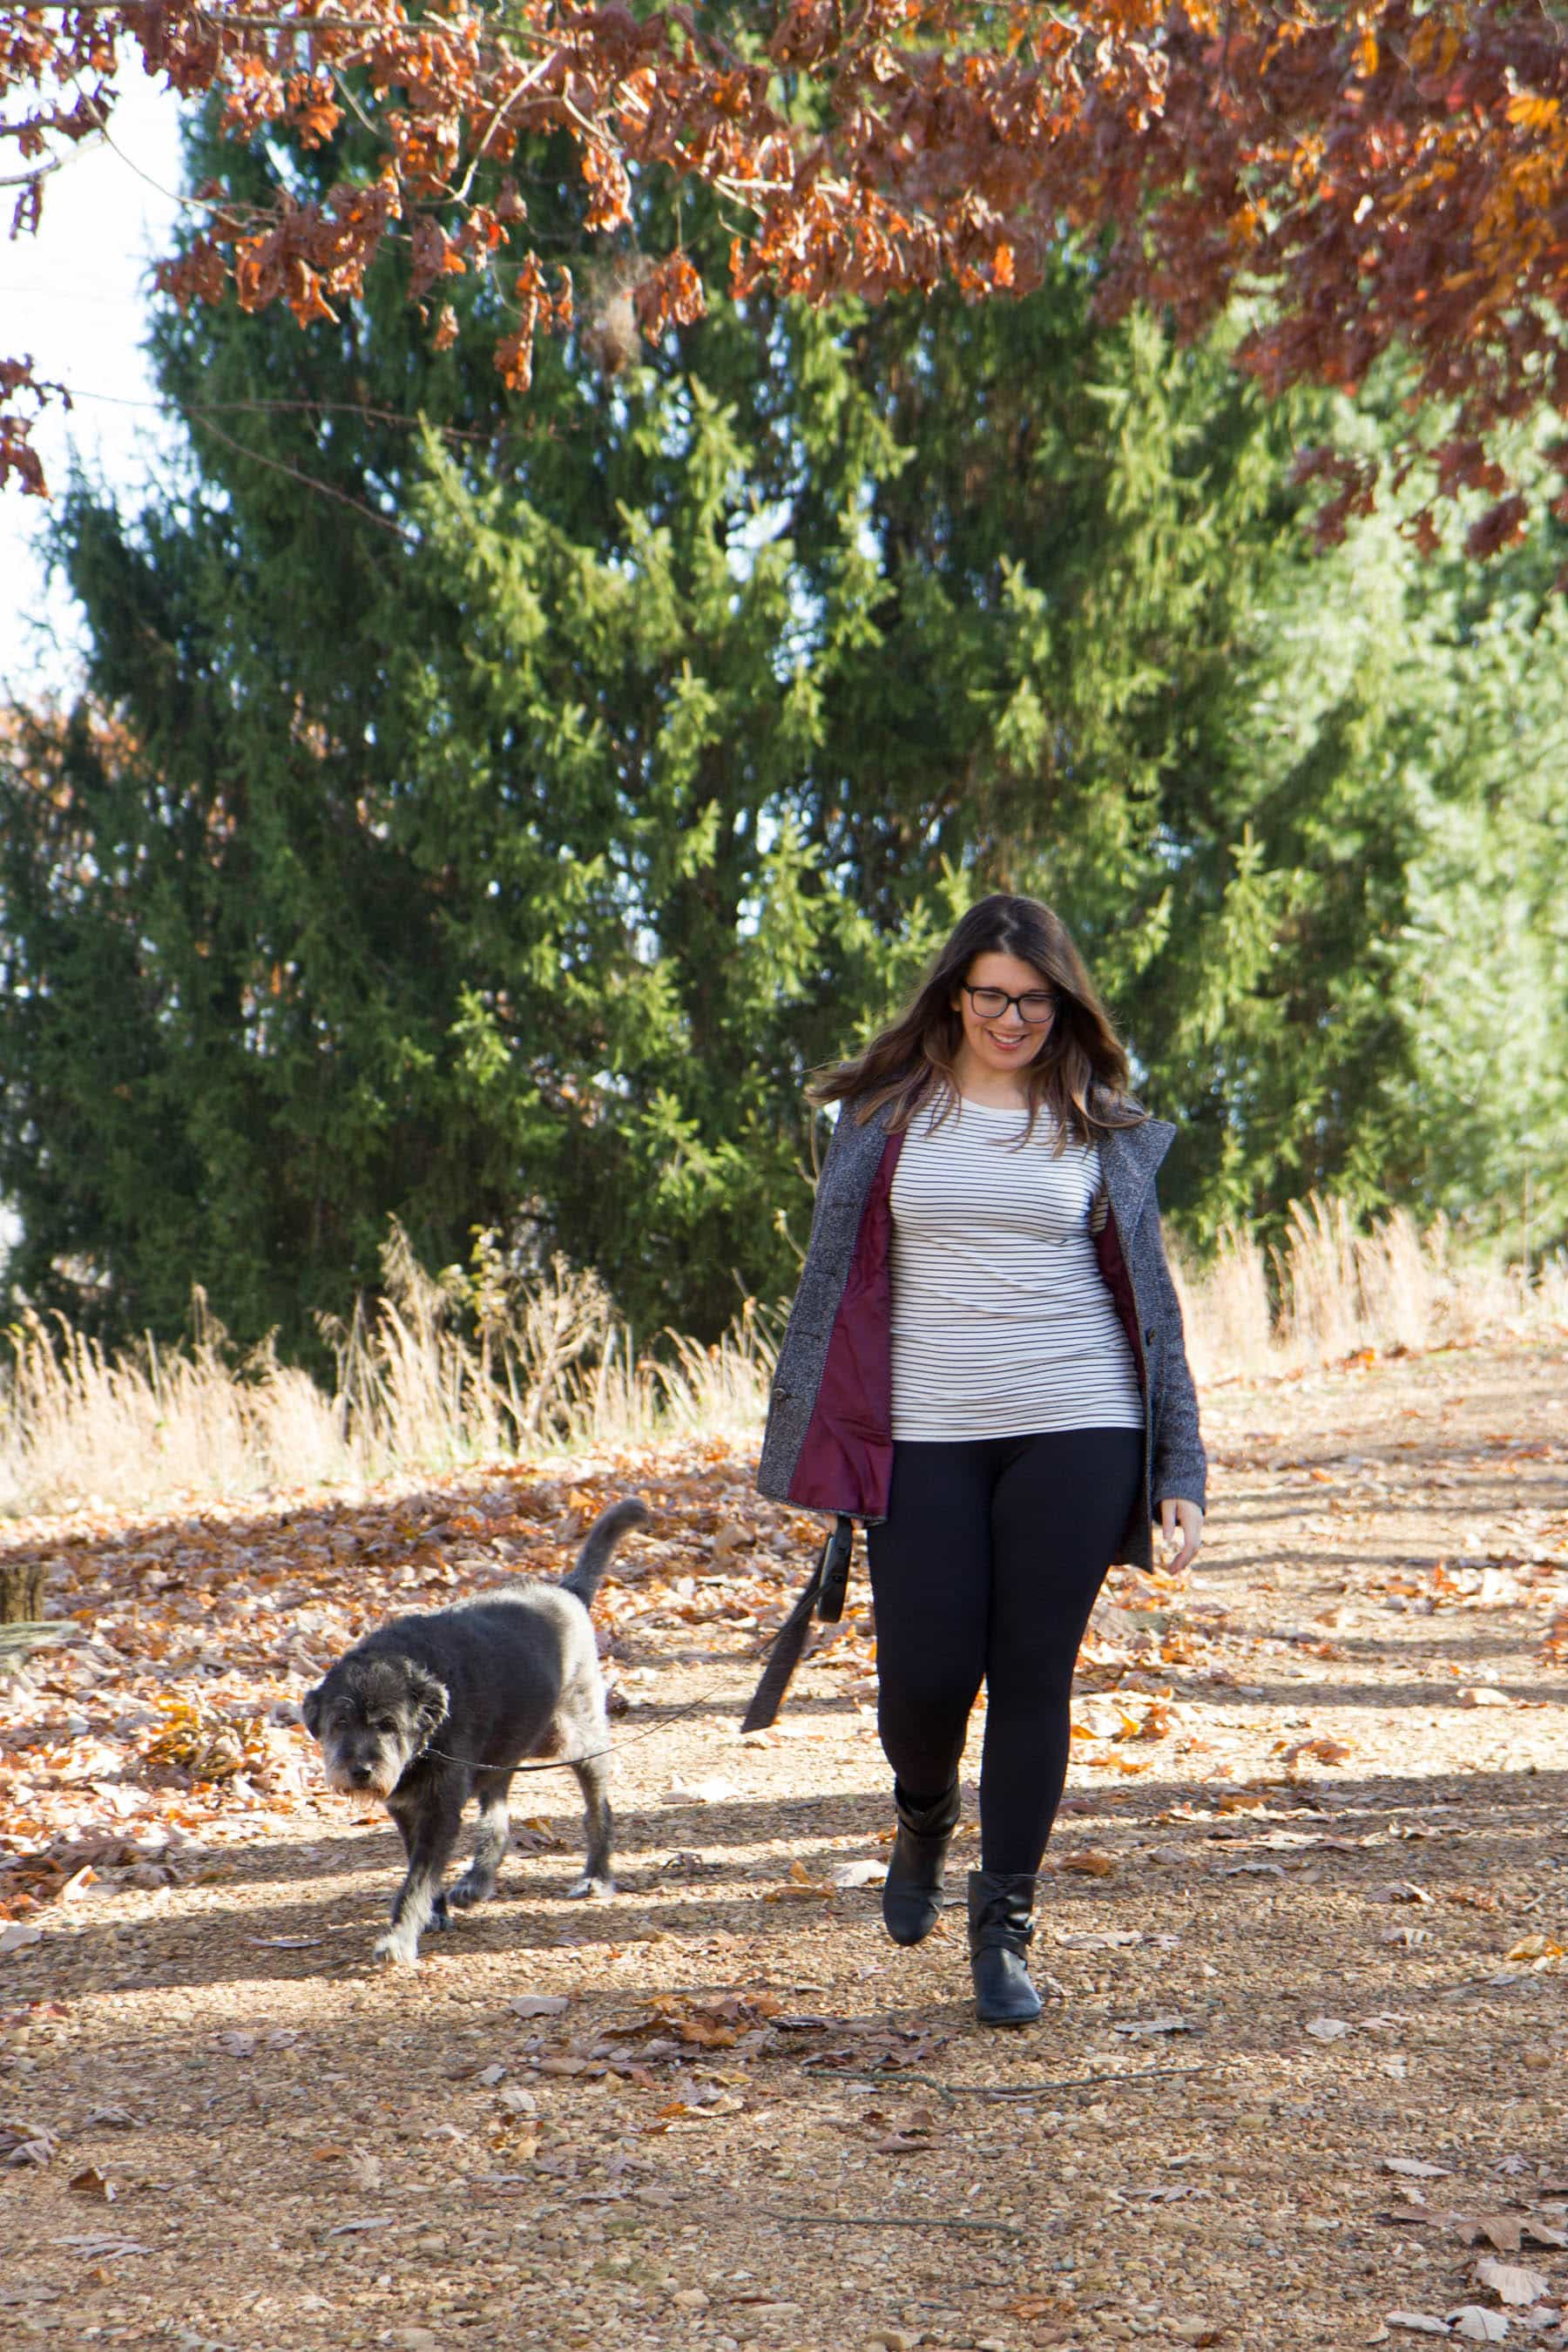 Brunette woman wearing layers walks a grey dog outside.